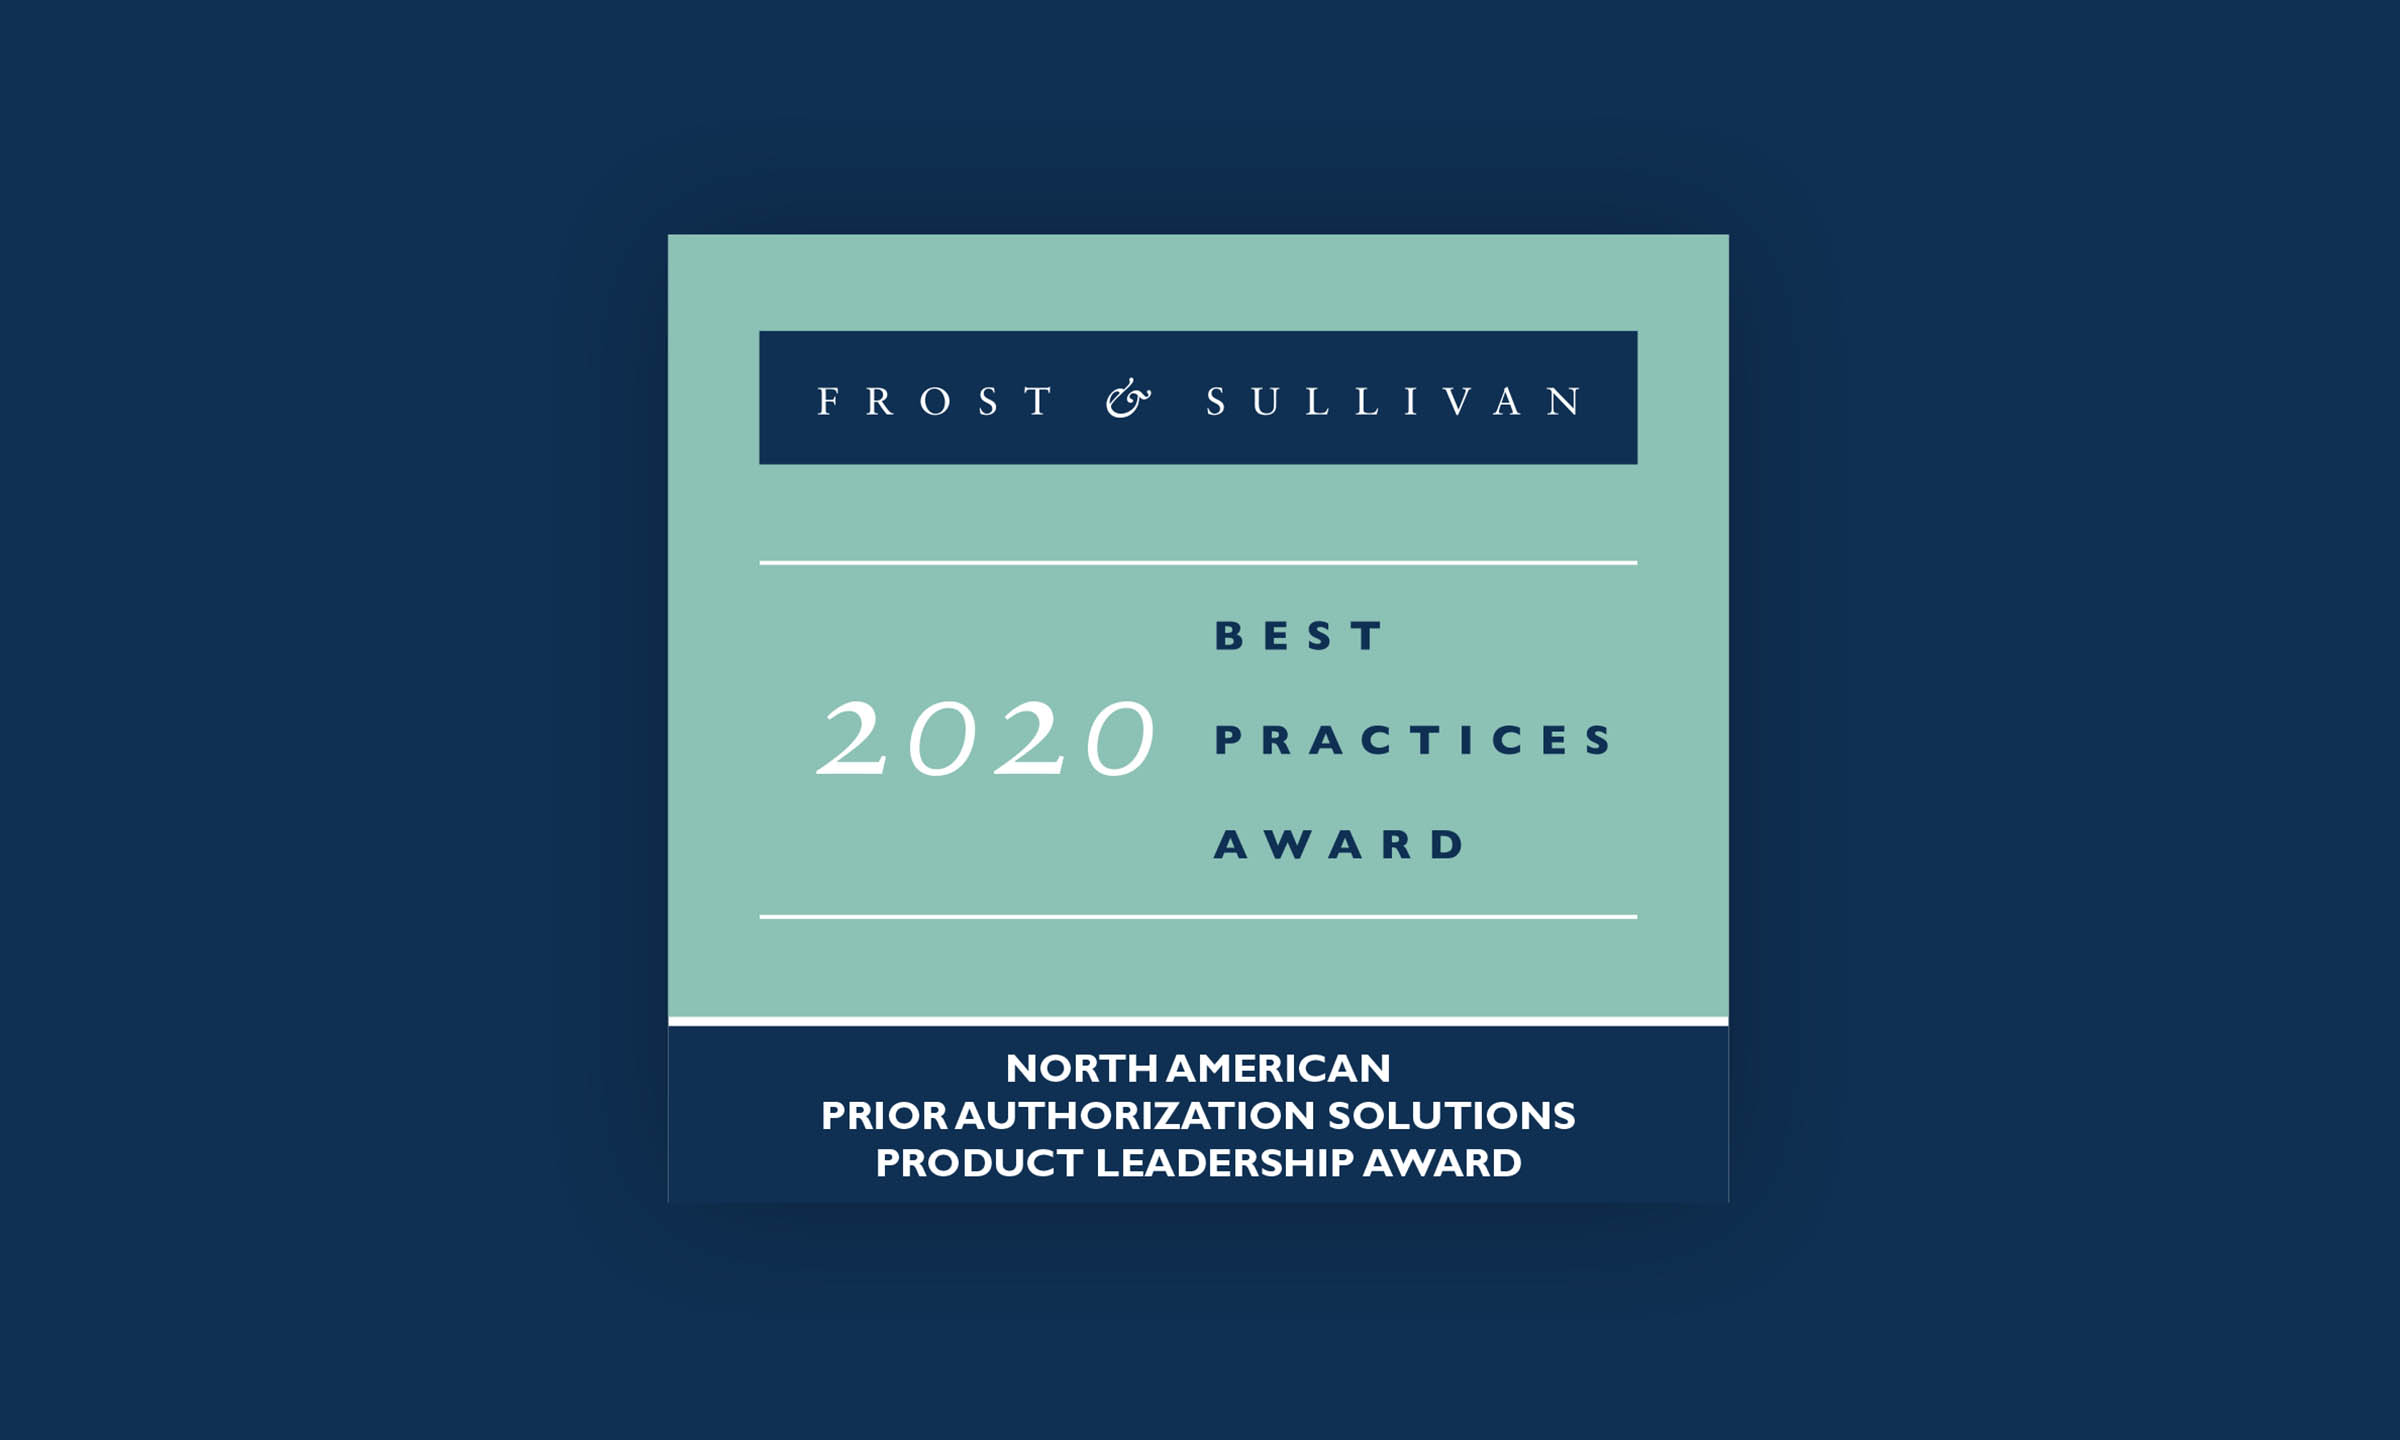 A graphic of the Frost & Sullivan award logo badge.